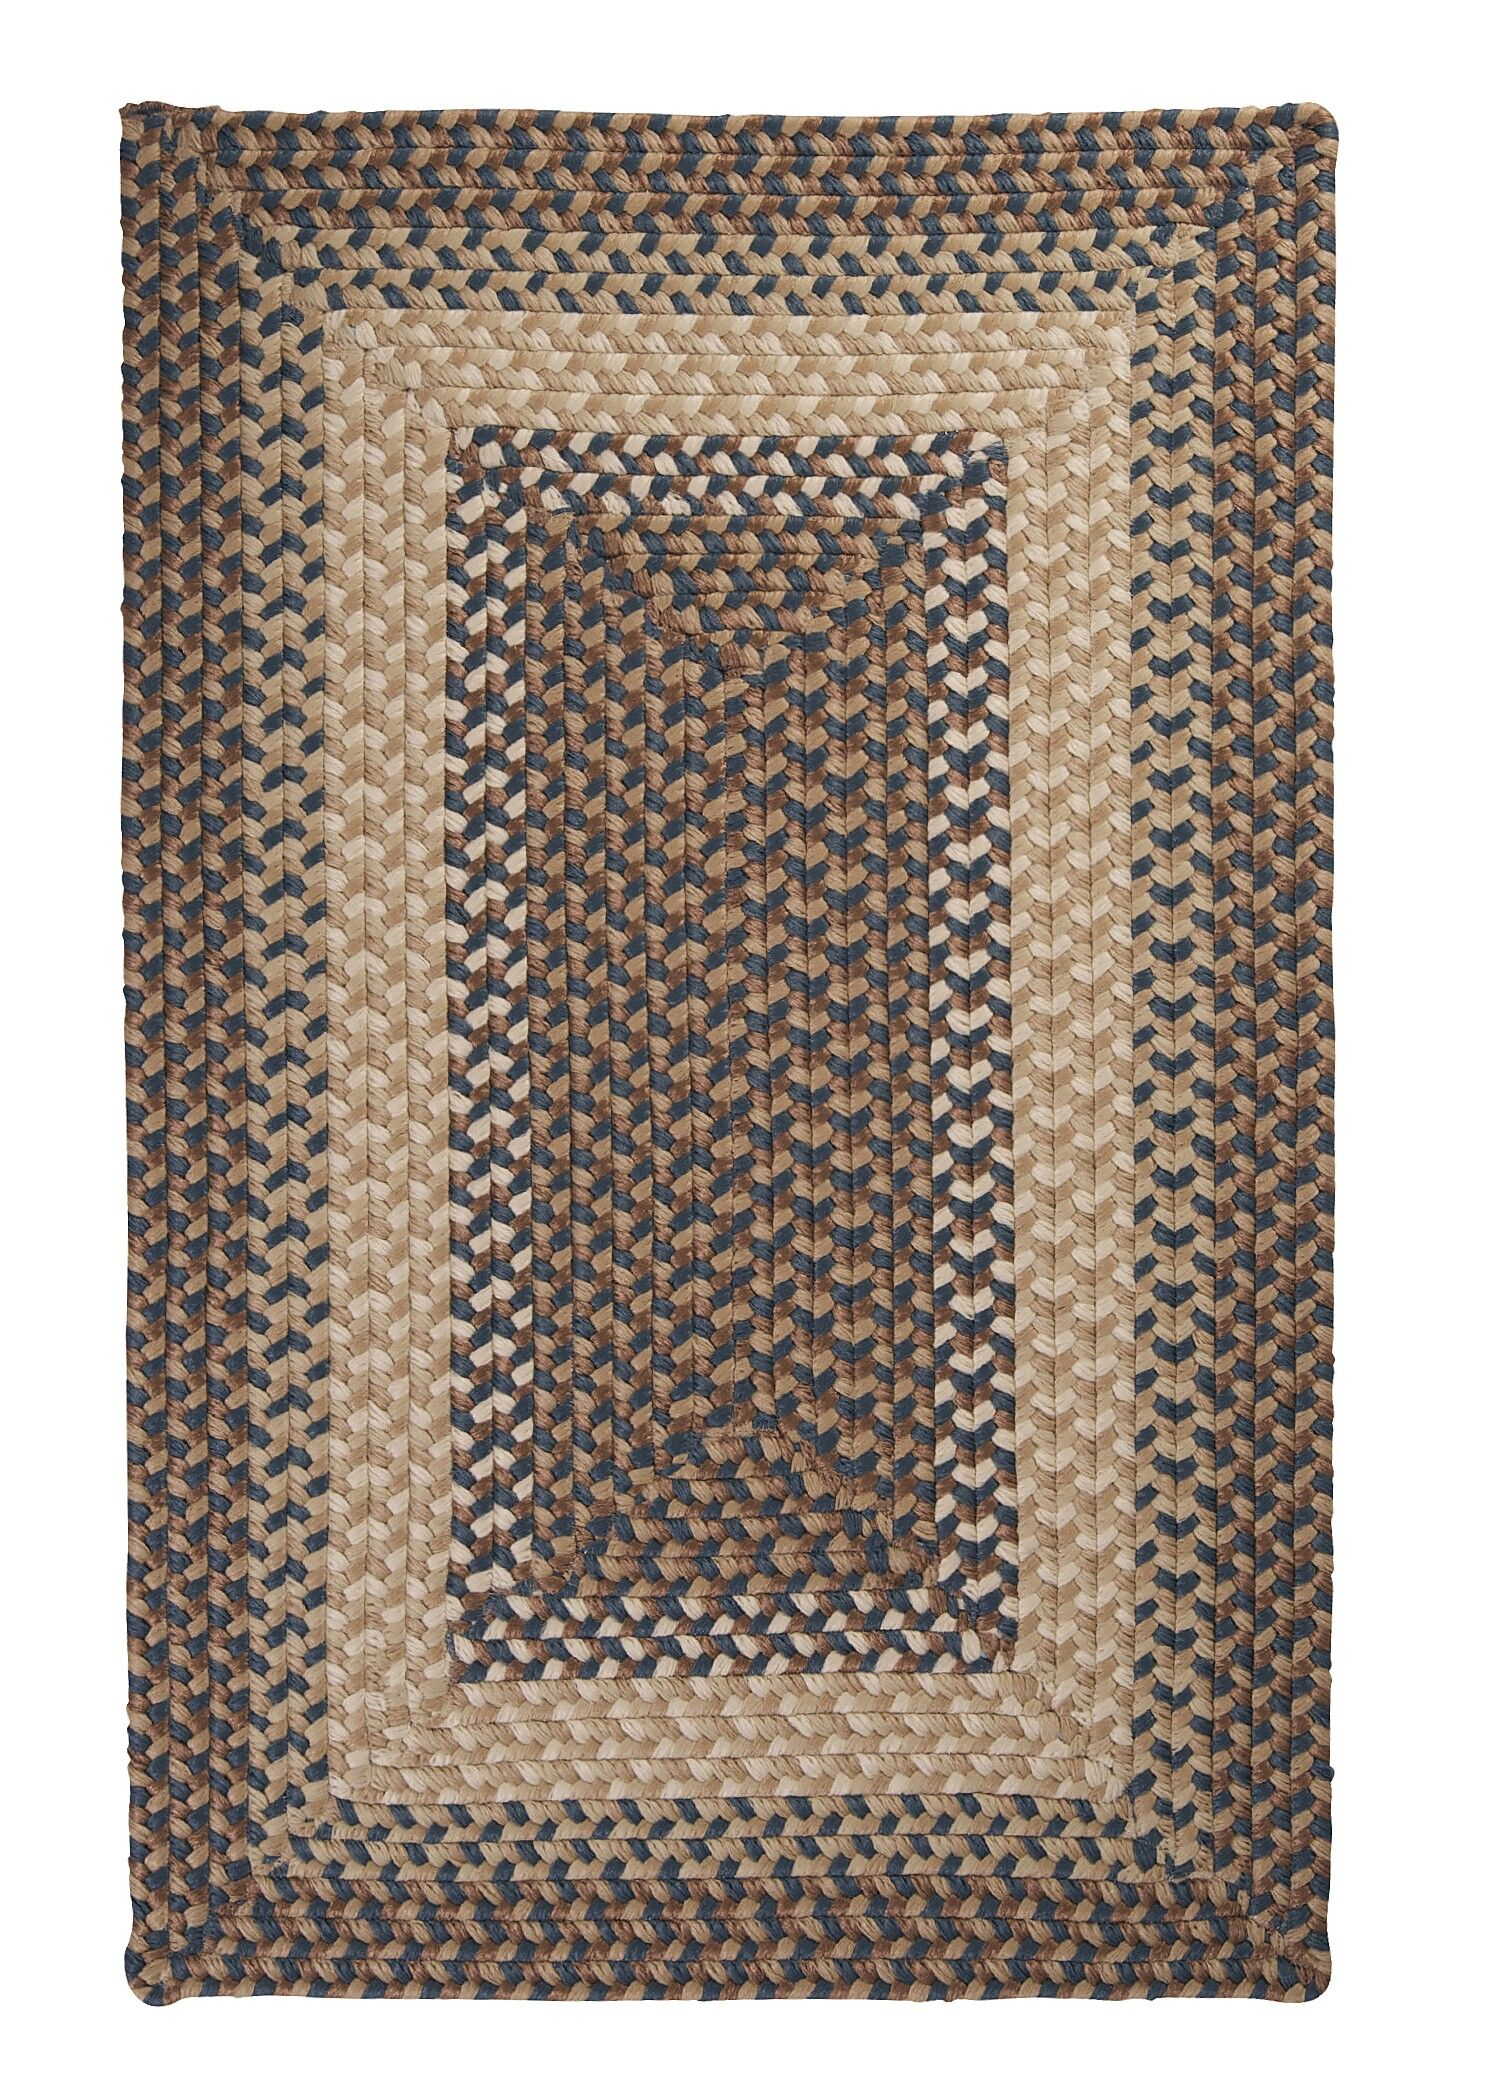 Tiburon Stone & Blue Braided Indoor/Outdoor Area Rug Rug Size: Rectangle 10' x 13'